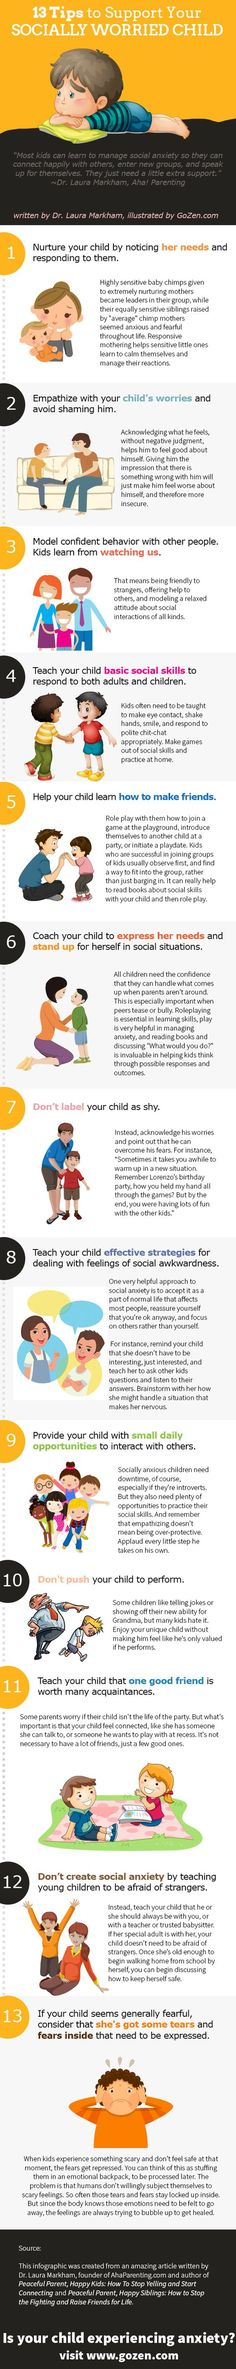 Shy child? 13 Tips to Help: